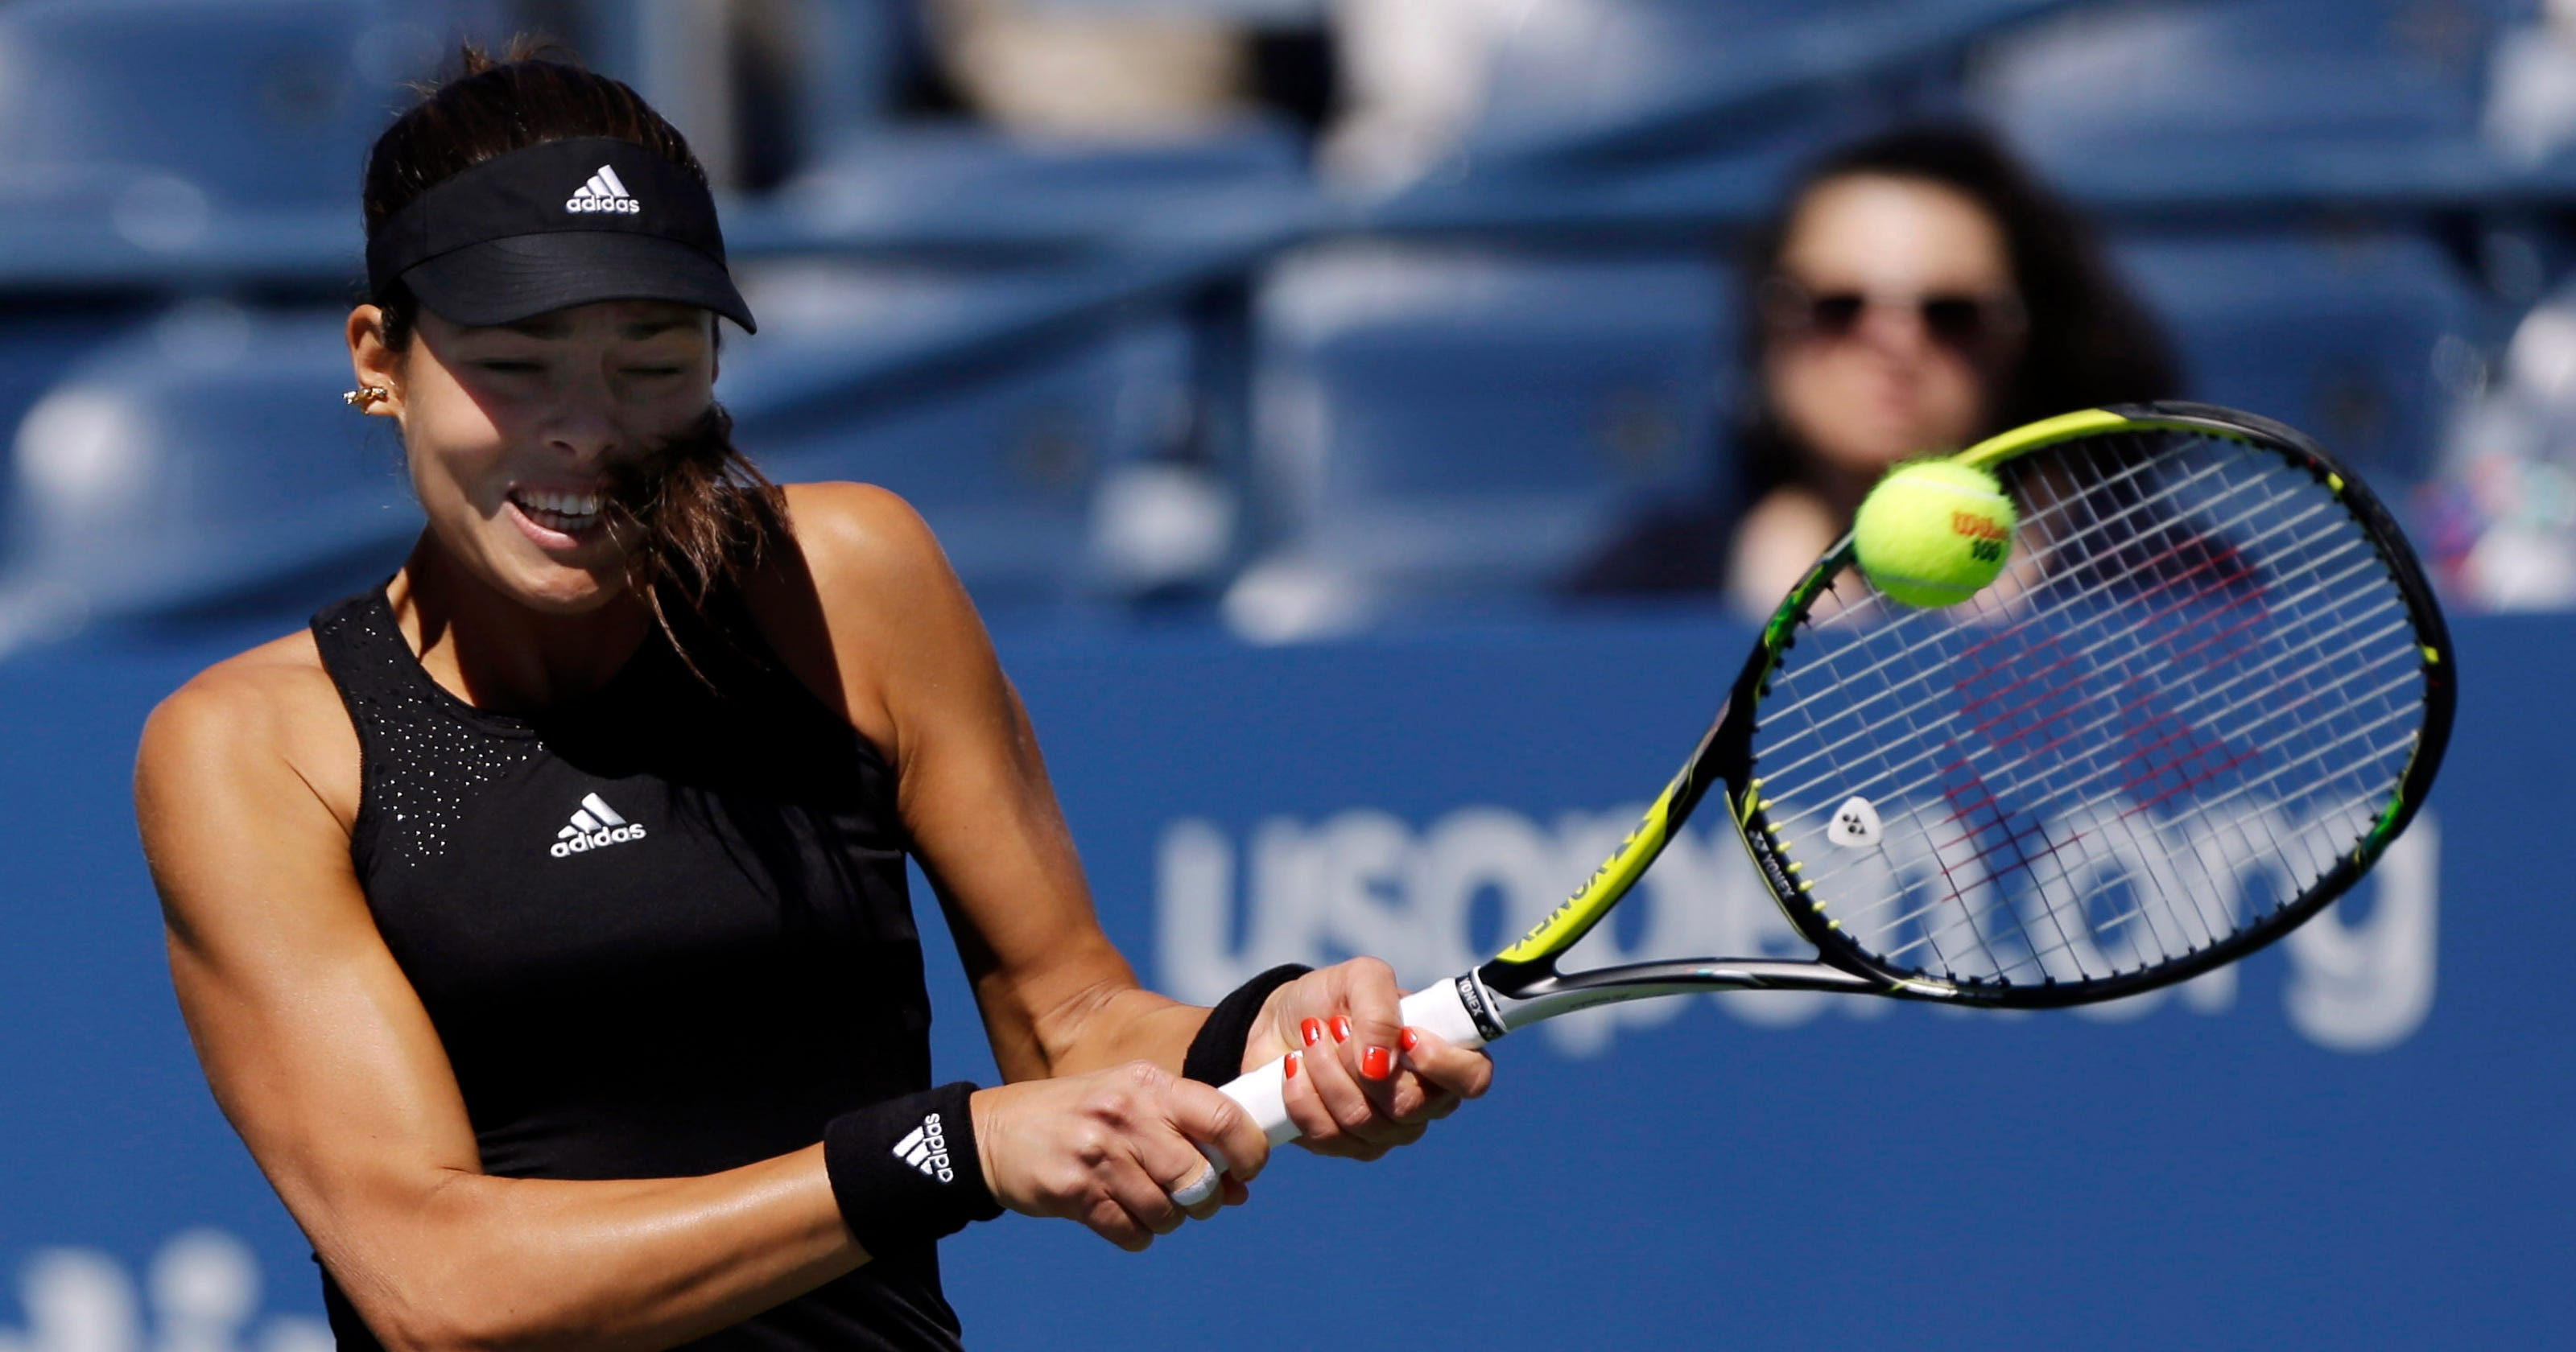 e7828e8dc Ivanovic lone upset in second round of US Open